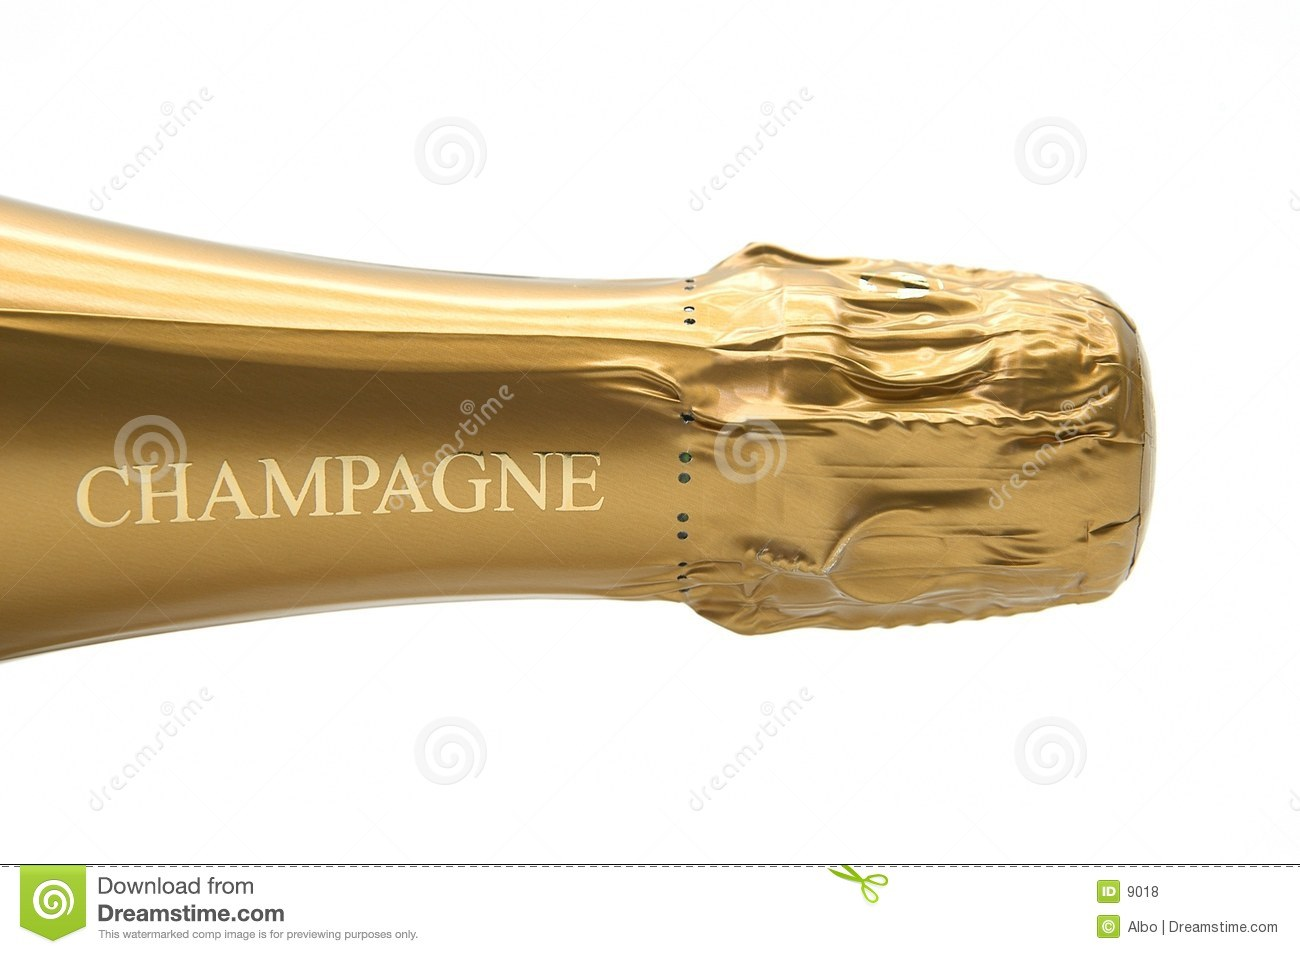 Download Bottiglia di Champagne fotografia stock editoriale. Immagine di economia - 9018